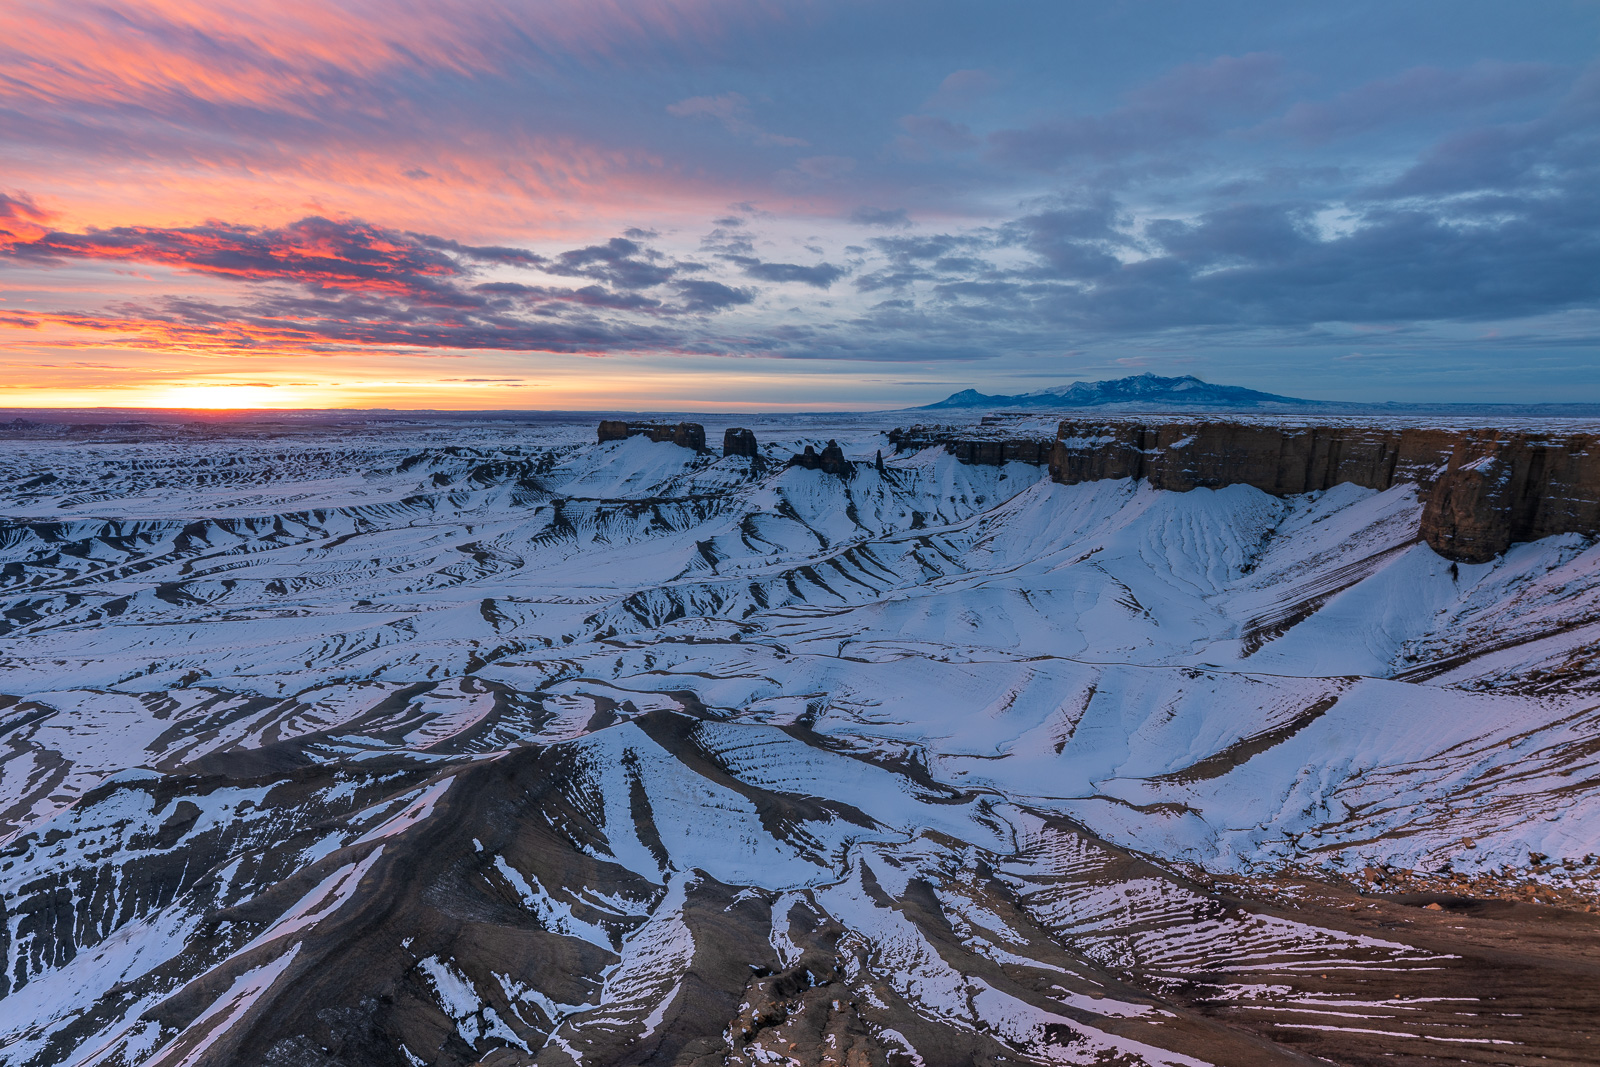 A remarkable winter sunrise over the Utah Badlands outside of Capitol Reef National Park.